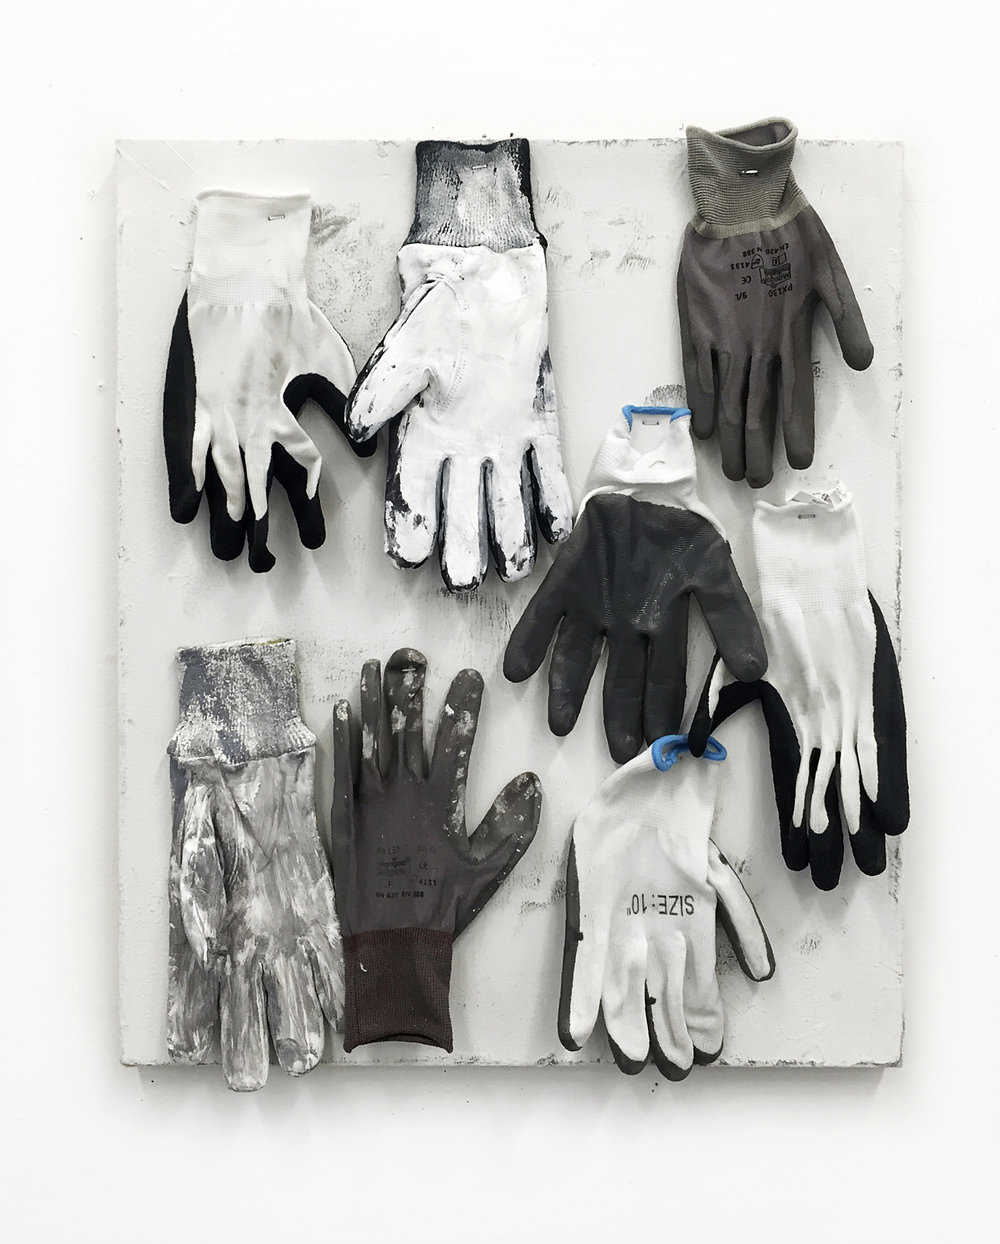 "Of Workman , 2016 Oil, latex, gloves, canvas 20"" x 24"""